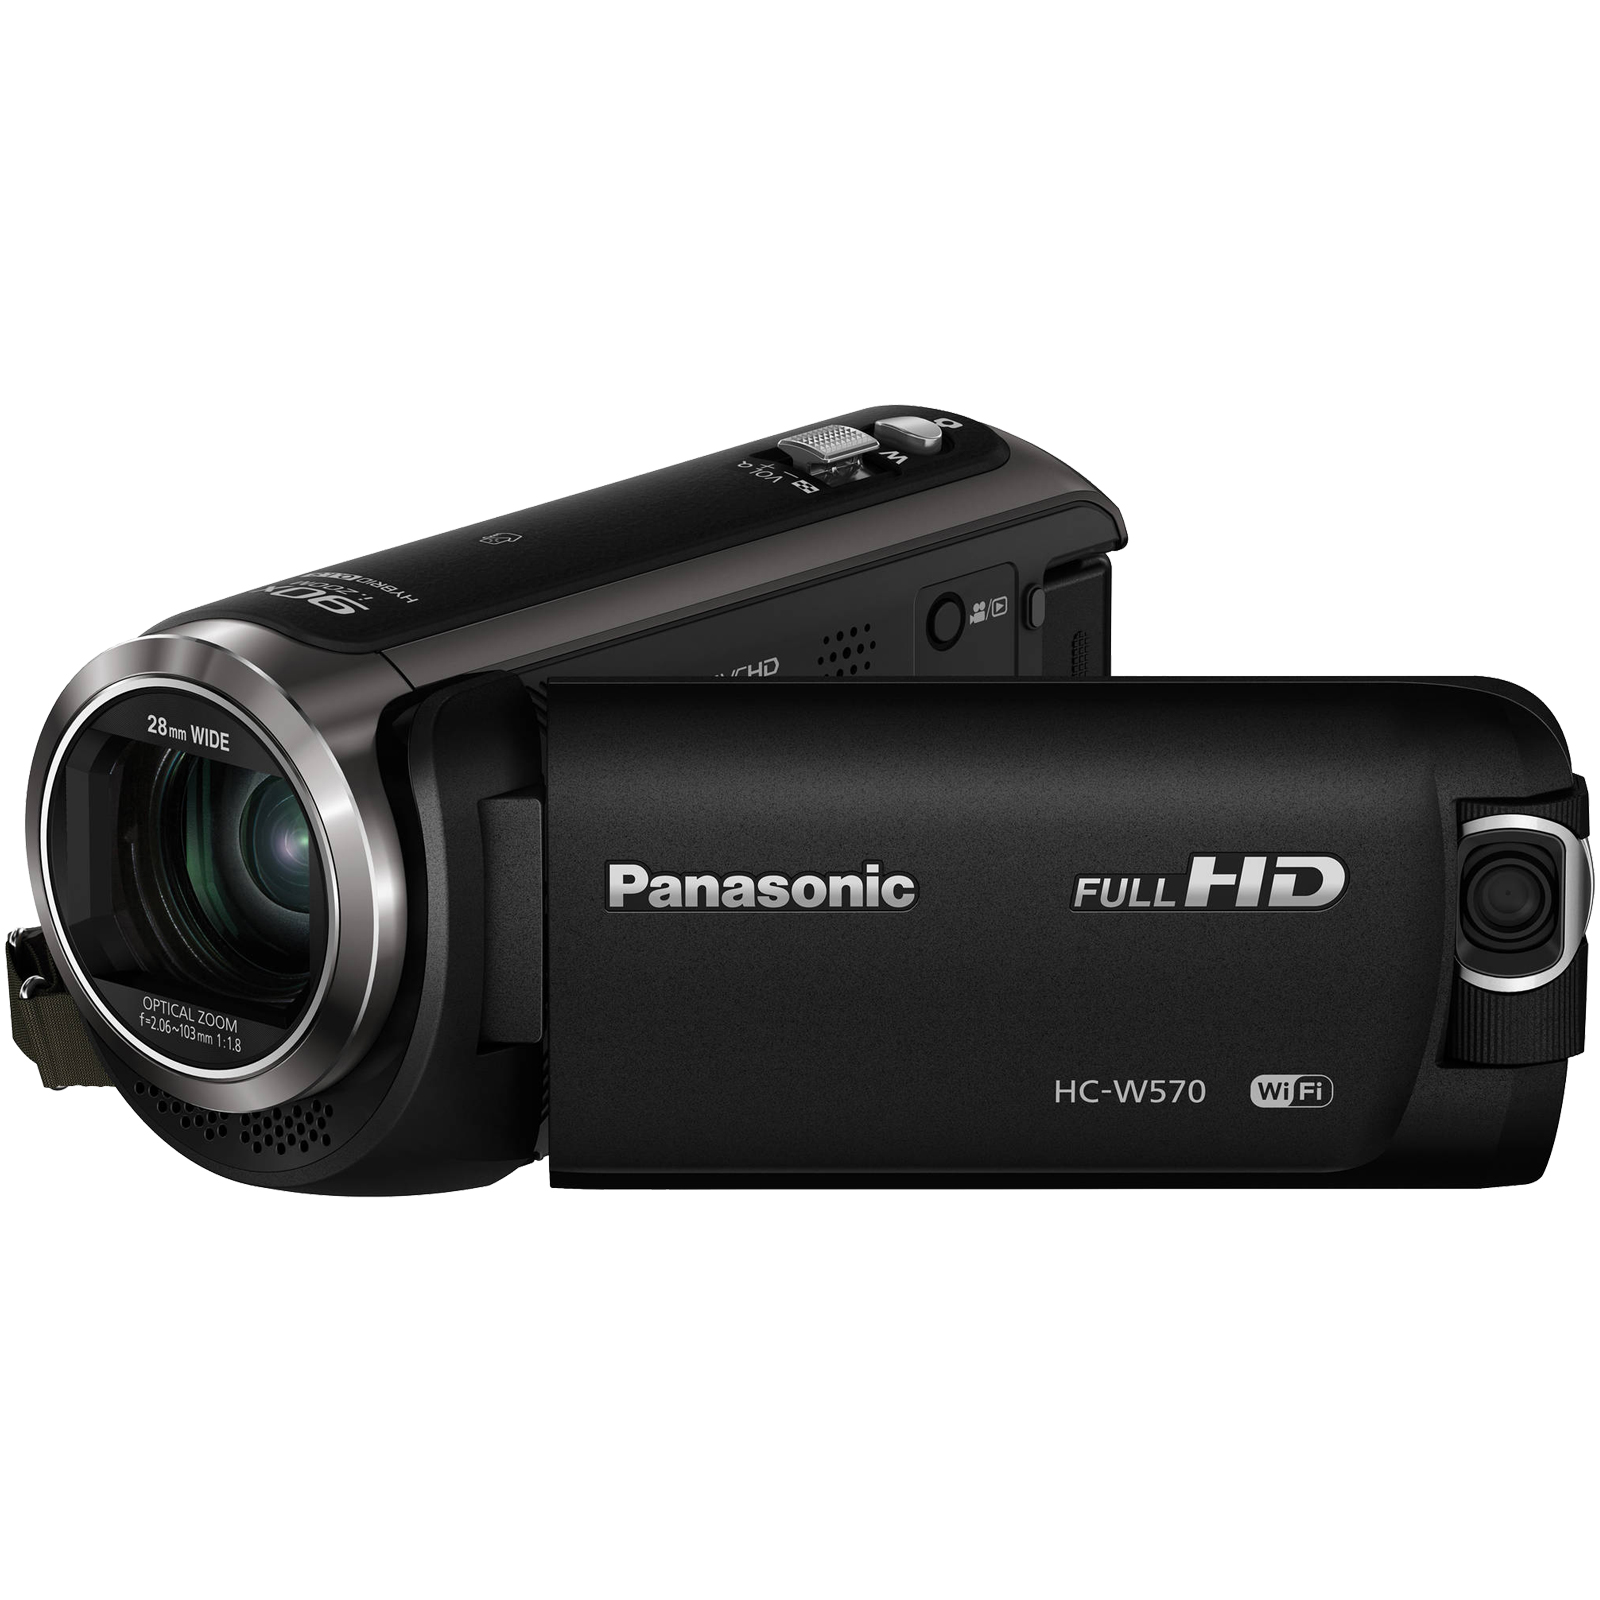 Panasonic HC-W570 Twin Recording HD Wi-Fi Video Camera Camcorder Twin Features: Picture-in Picture Full-motion... by Panasonic